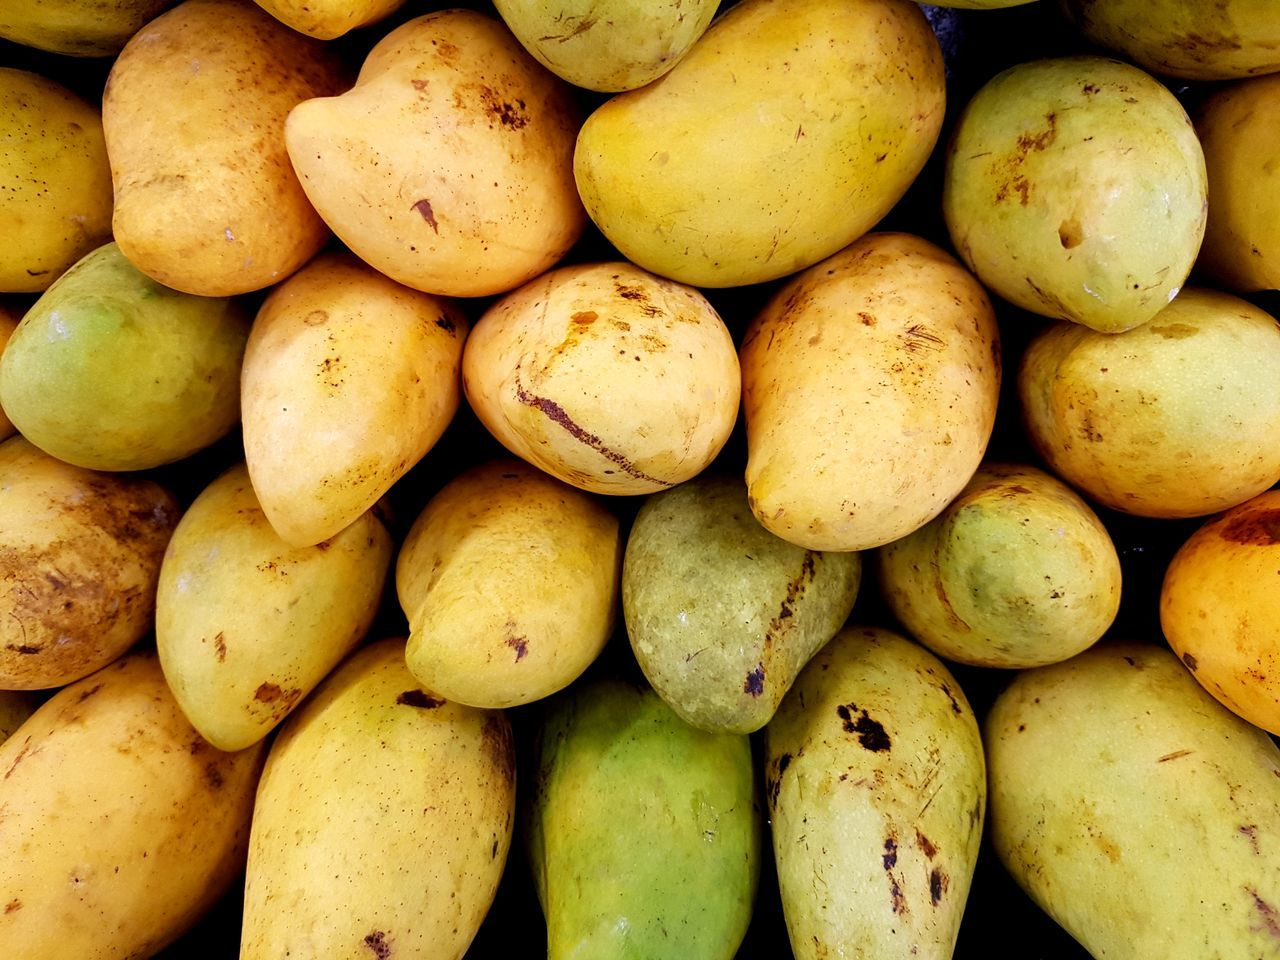 Mangoes Vitamin Agricultural Agronomy Agriculture Organic Market Plants Still Life Nature Healthy Lifestyle Backgrounds Close-up Large Group Of Objects Fruit Food And Drink Healthy Eating